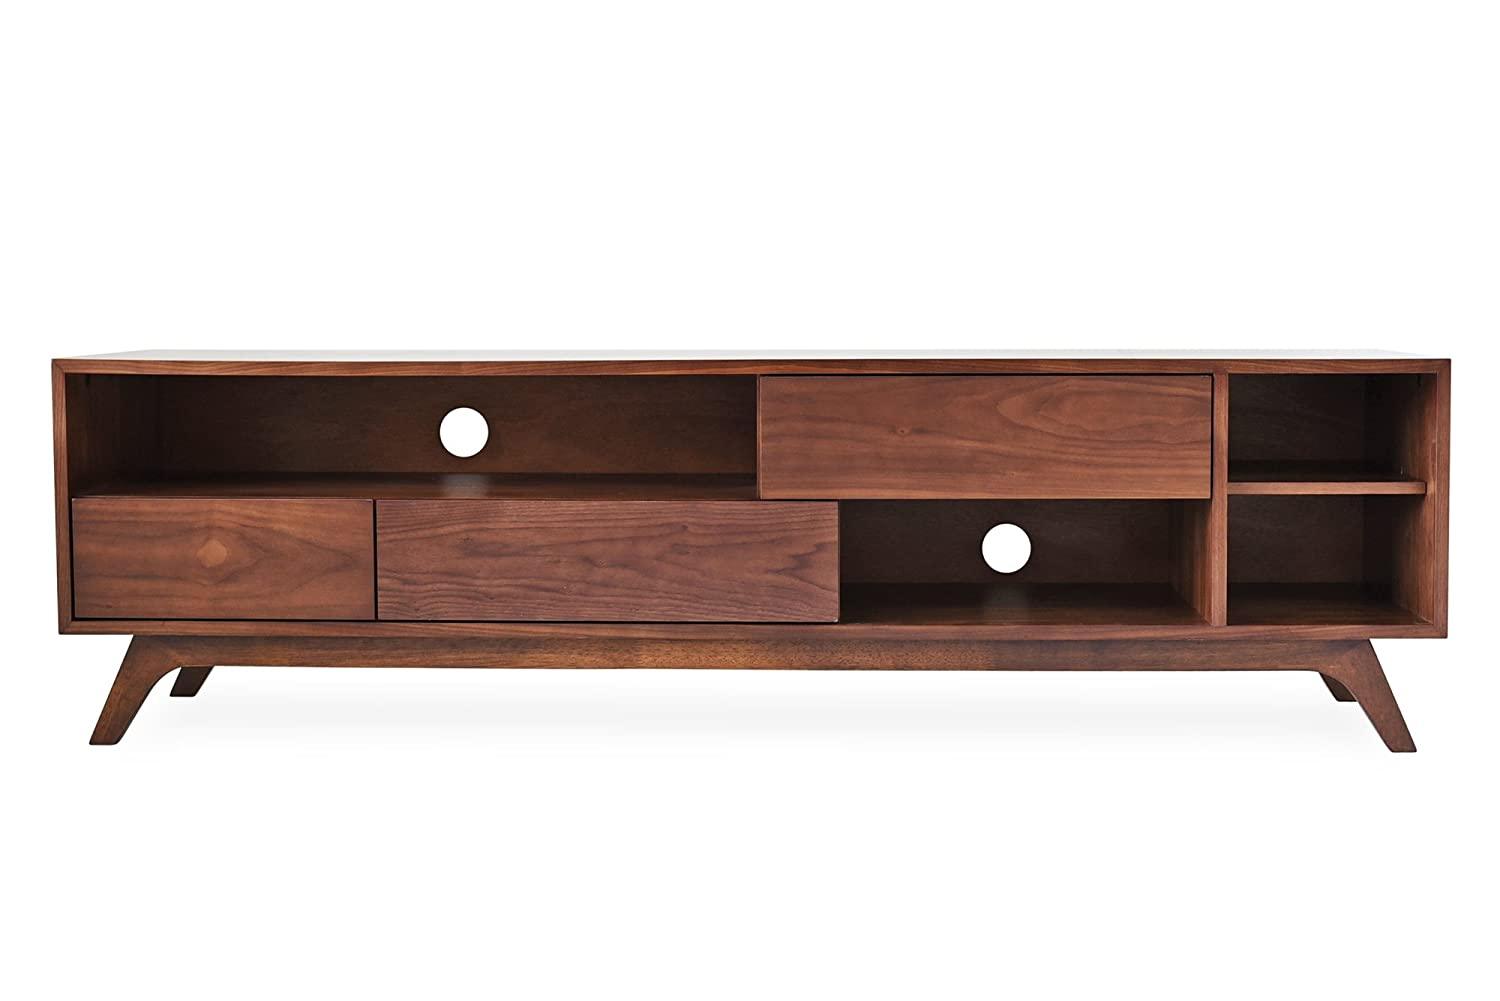 finest selection 21b43 9619d Edloe Finch PIPER Mid-Century Modern TV Stand, Cabinet with Storage, Walnut